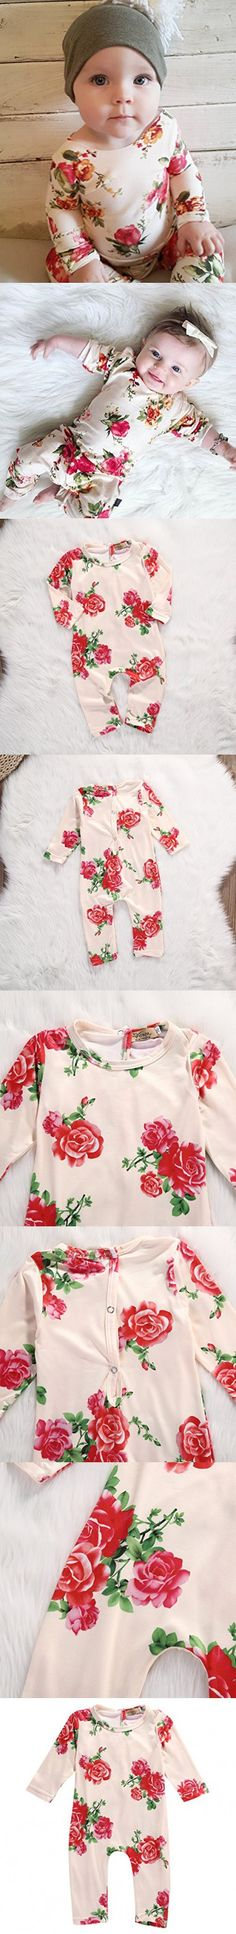 Newborn Baby Girls Long Sleeve Sweet Rose Romper Jumpsuit Bodysuit Outfits Clothes (0-6 months, rose)